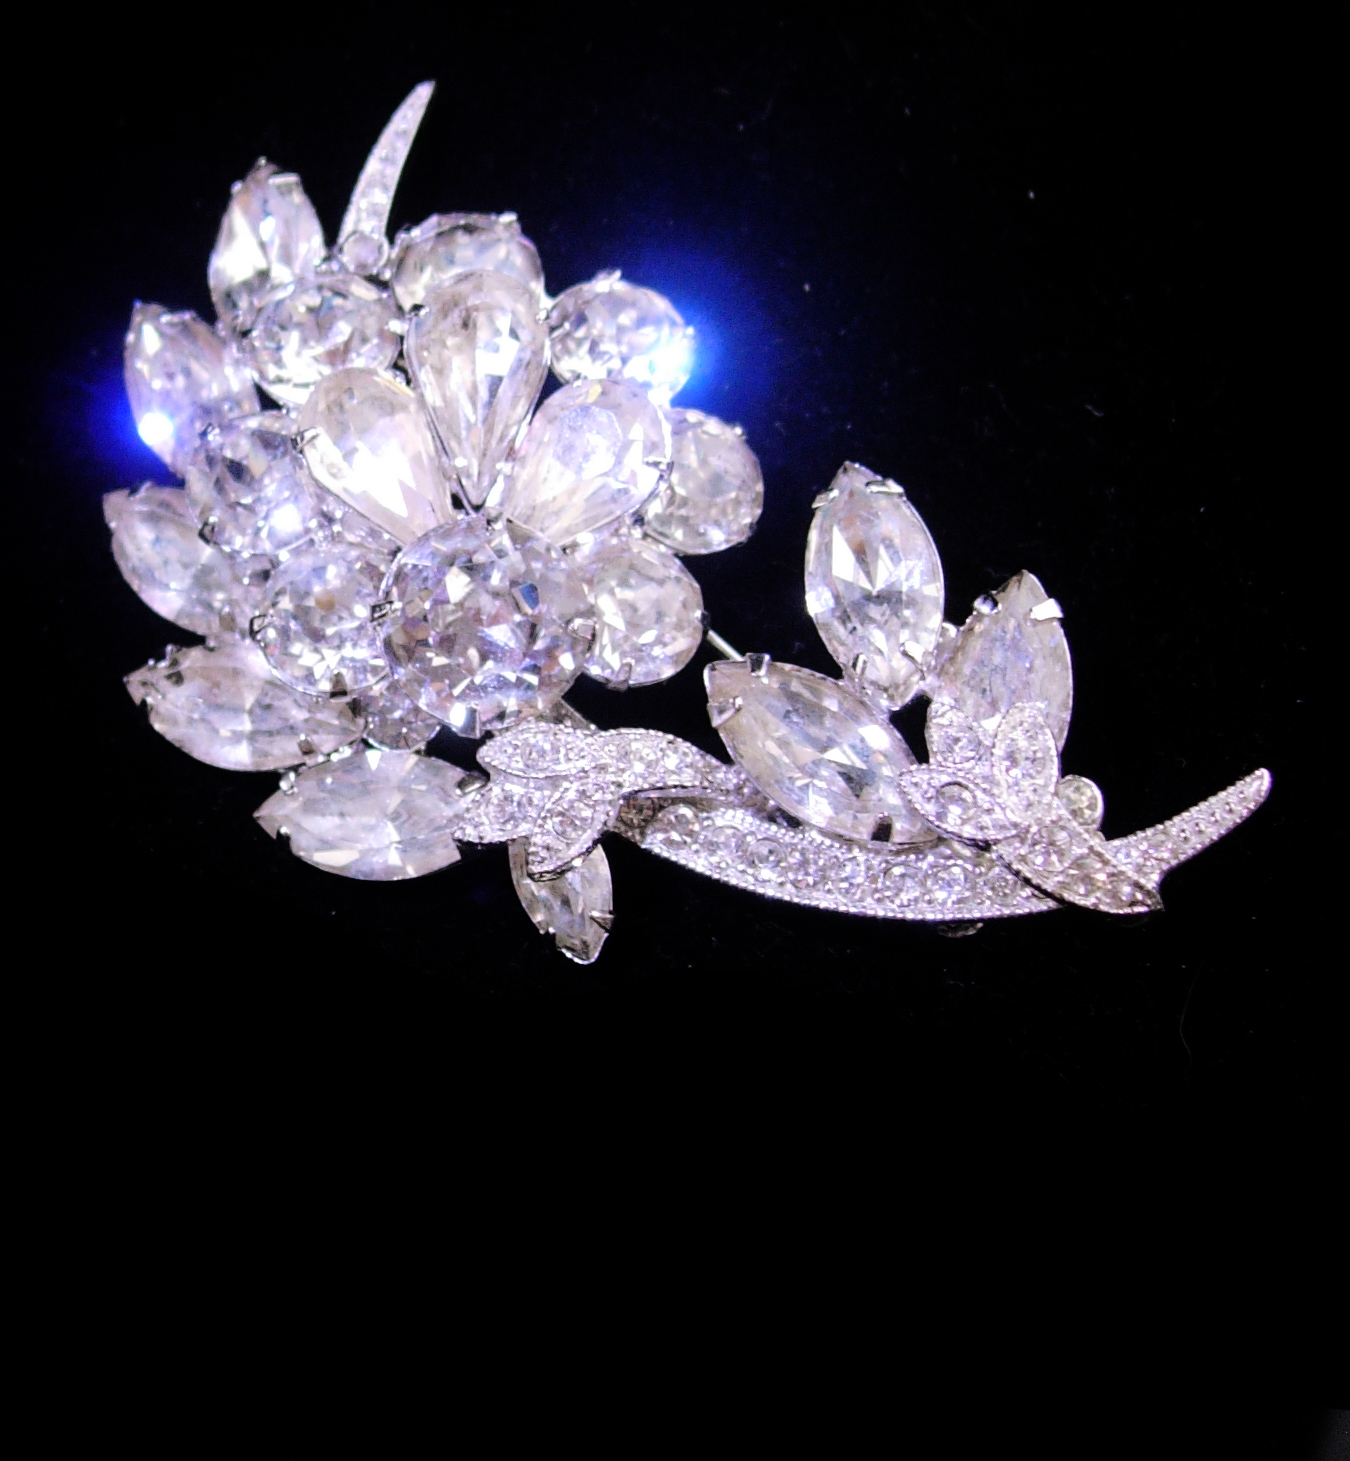 Primary image for Eisenberg Ice Brooch - numbered pin - silver flower spray - wedding jewelry - Vi